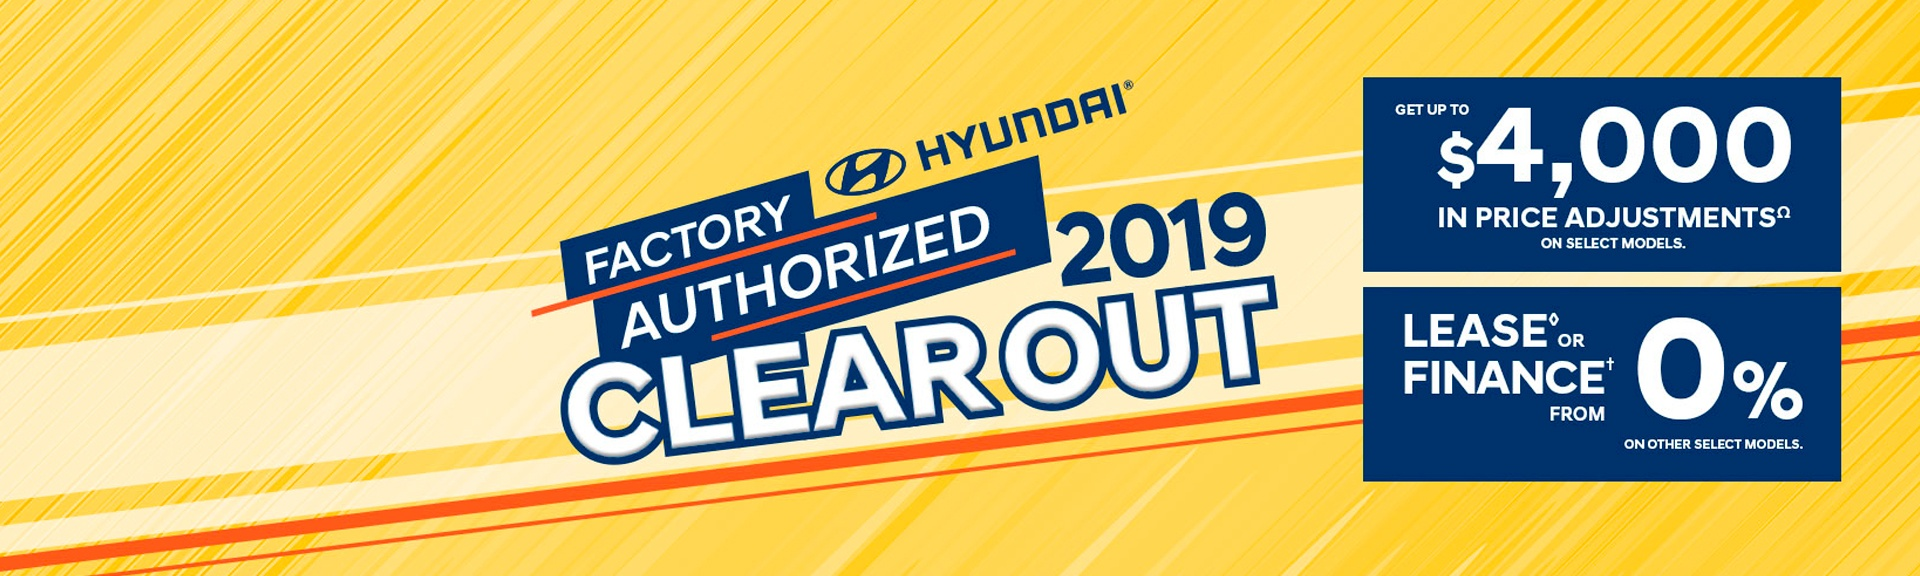 2019-Factory-Authorized-Clearout-Banner